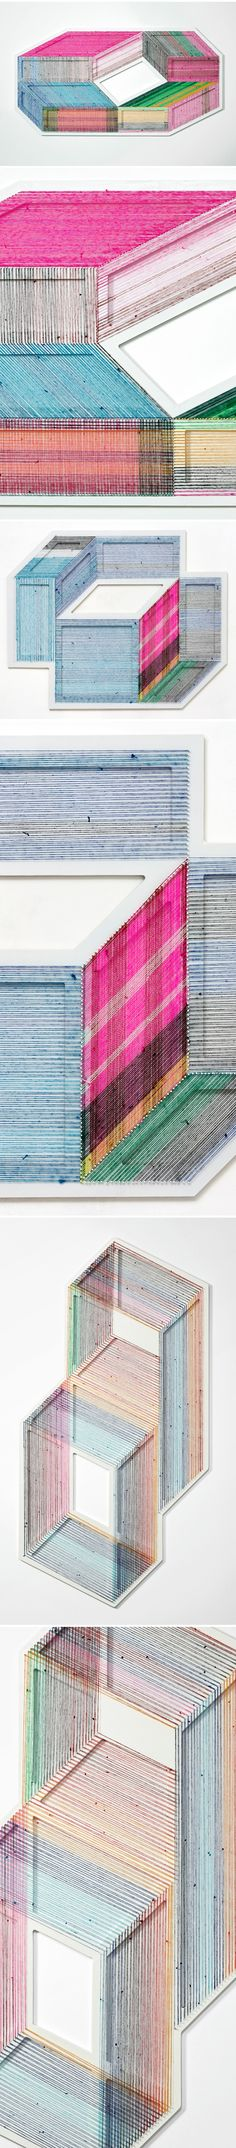 sarape blankets deconstructed and REconstructed into wall installations, by adrian esparza <3